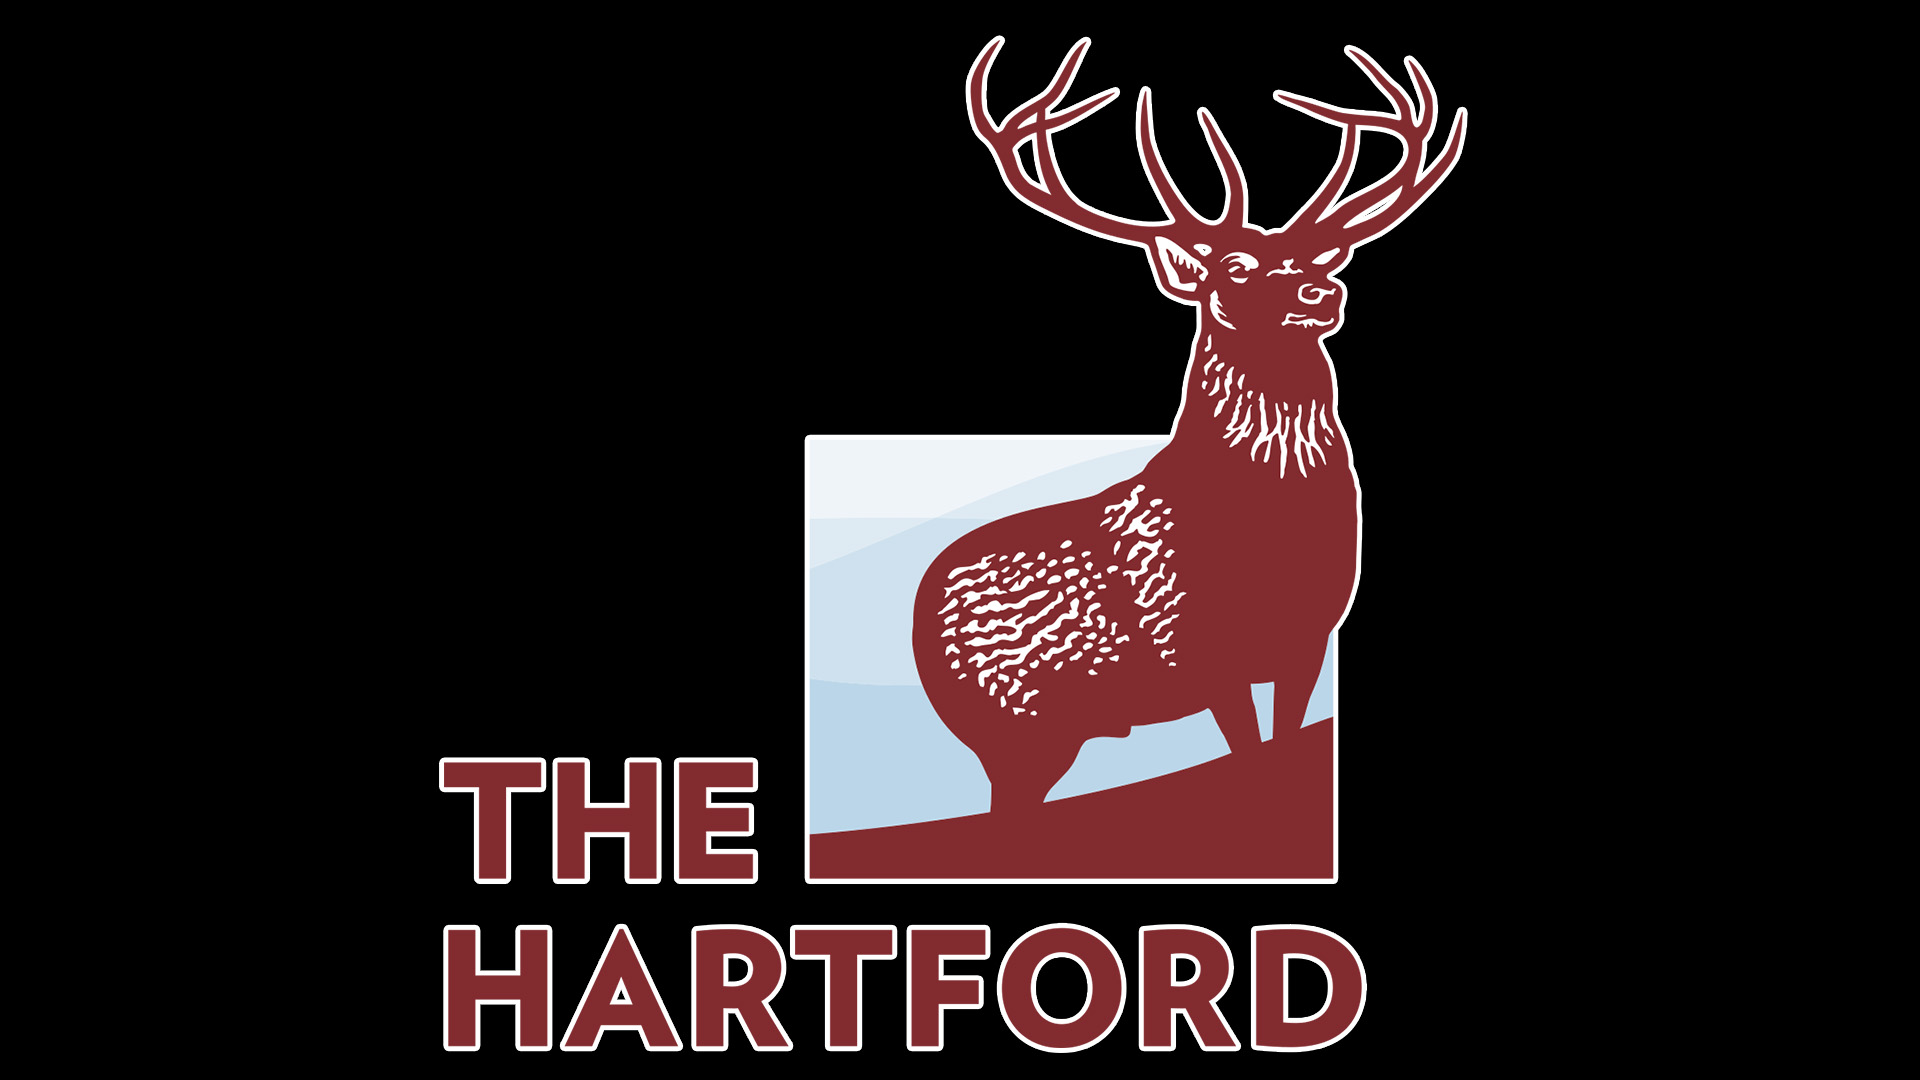 Meaning Hartford Insurance logo and symbol.